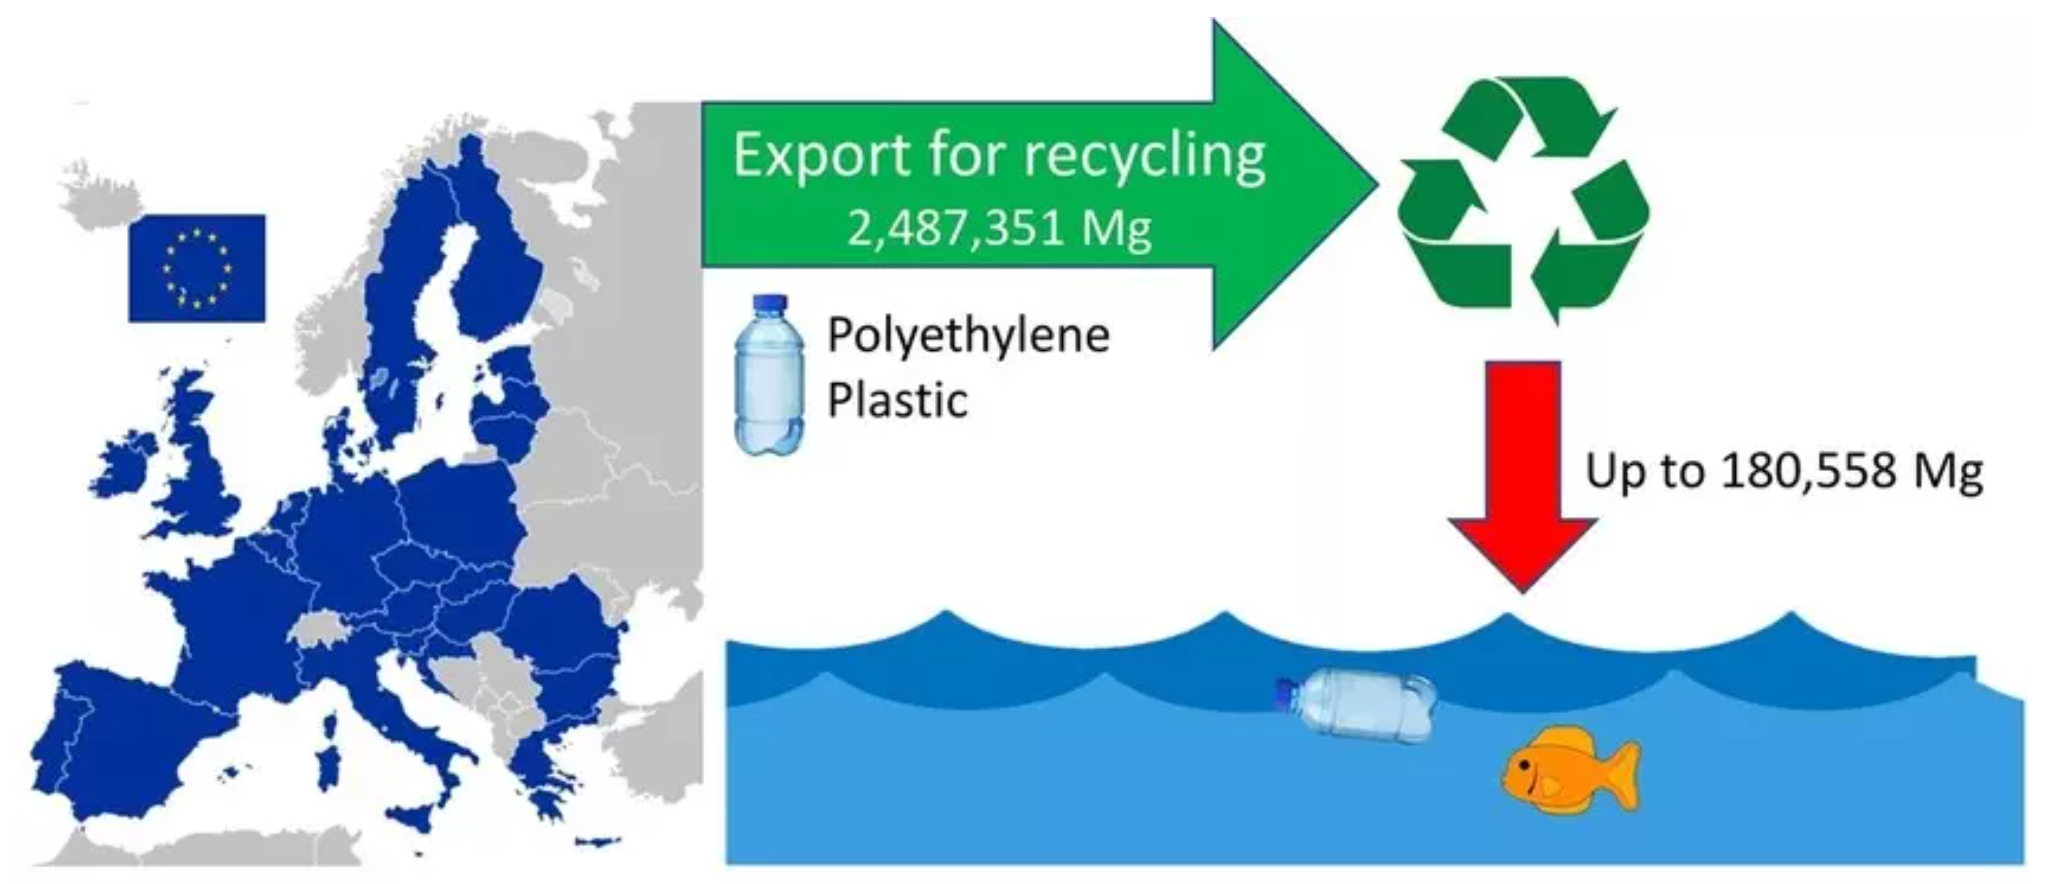 Estimated loss of polyethylene plastic into the ocean from recycling waste.